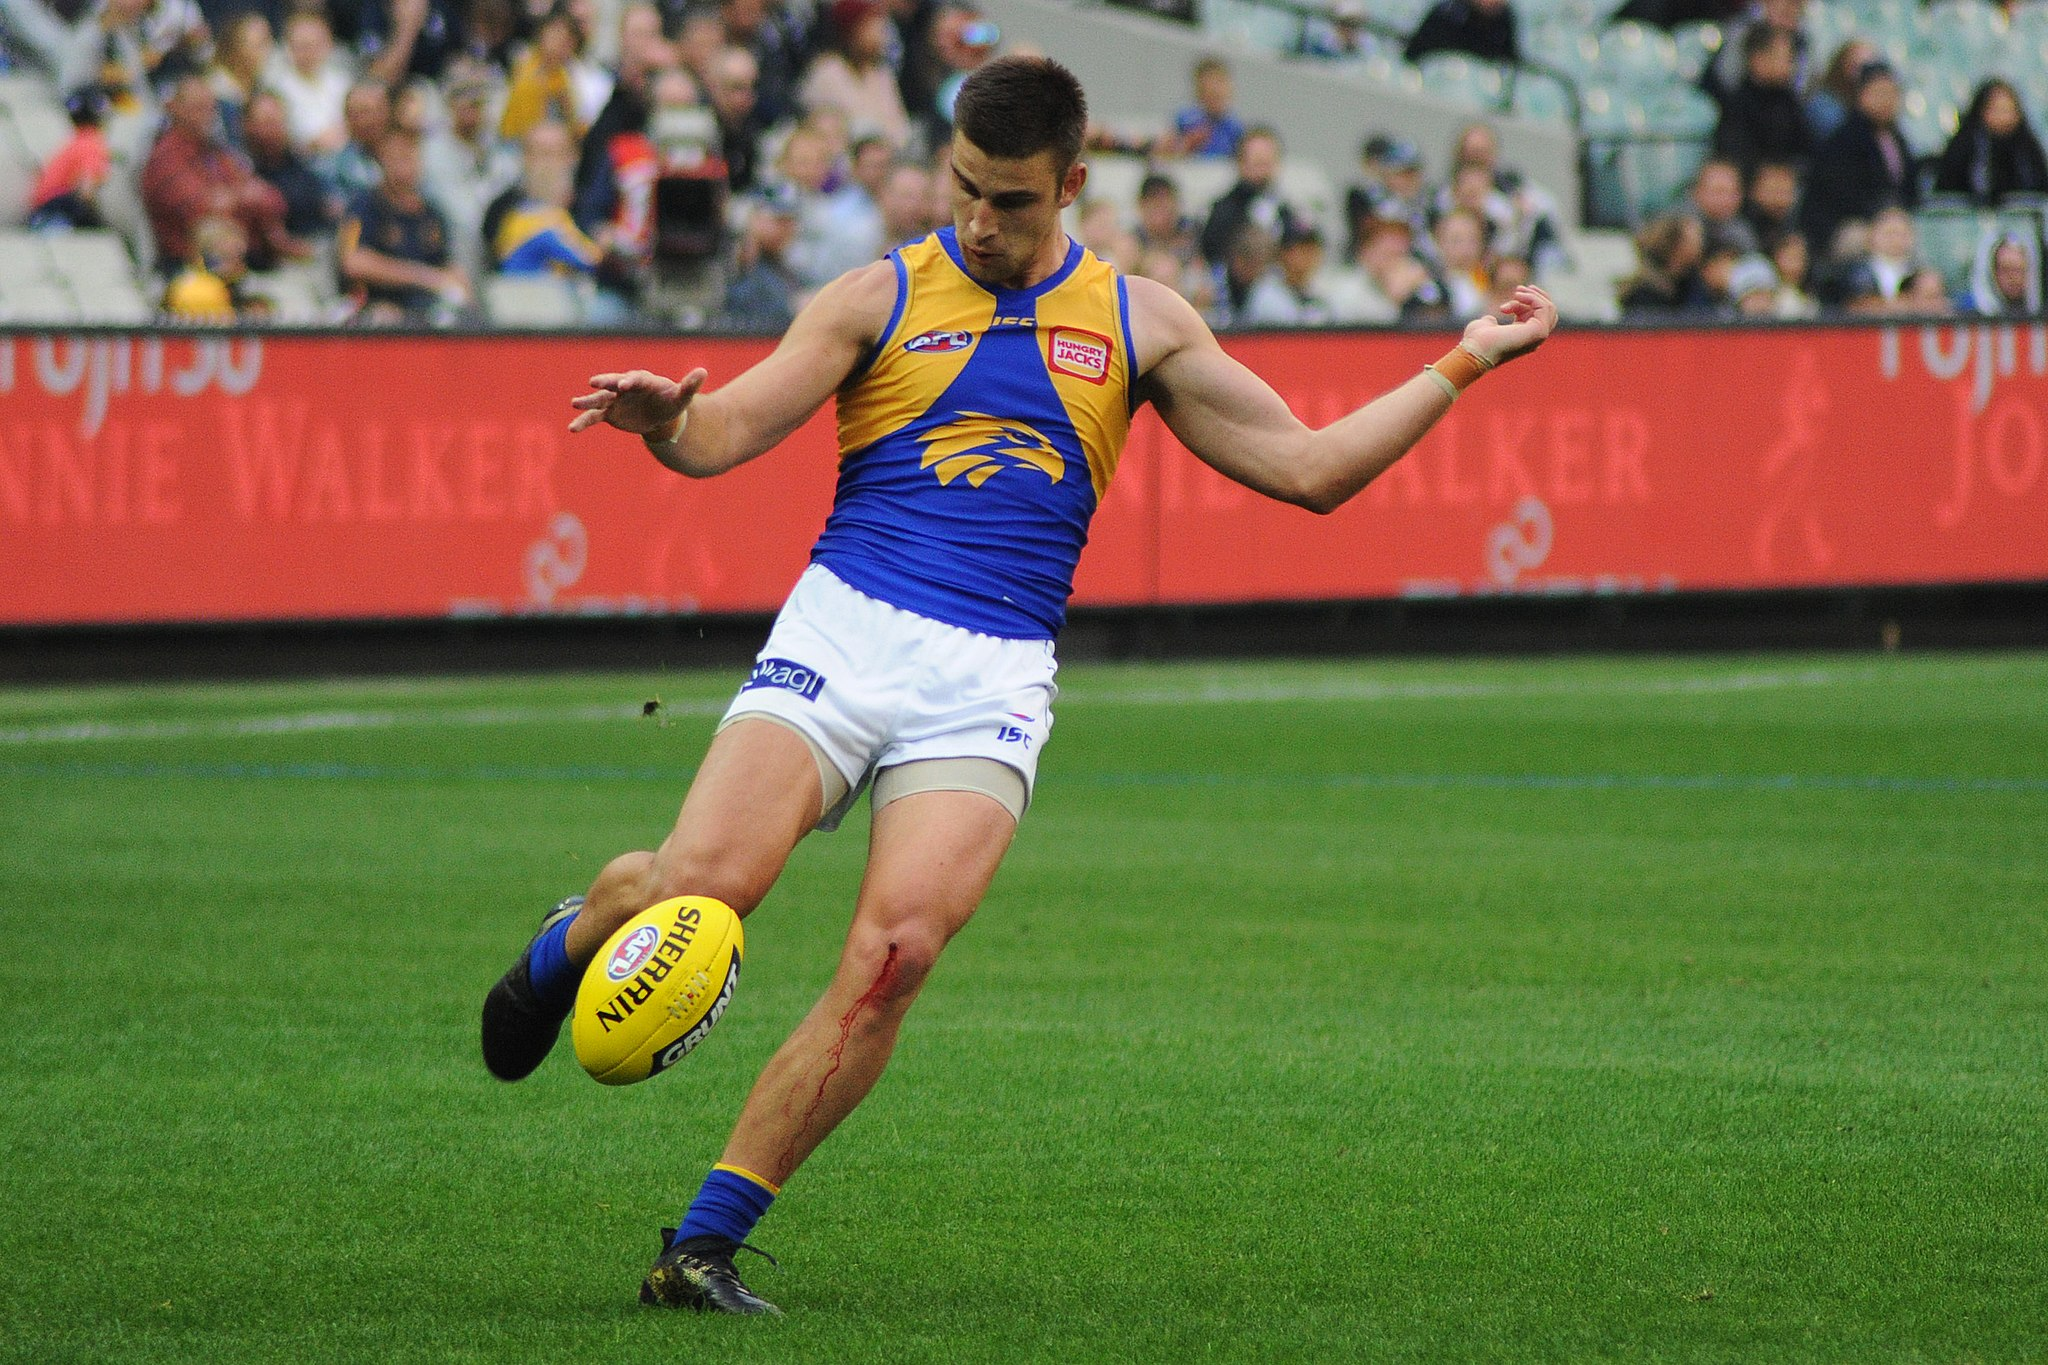 Elliot Yeo kicking during the AFL round five match between Carlton and West Coast on 21 April 2018 at the Melbourne Cricket Ground // Flickerd // (https://commons.wikimedia.org/wiki/File:Elliot_Yeo_kicking.1.jpg) // CC BY-SA (https://creativecommons.org/licenses/by-sa/4.0)